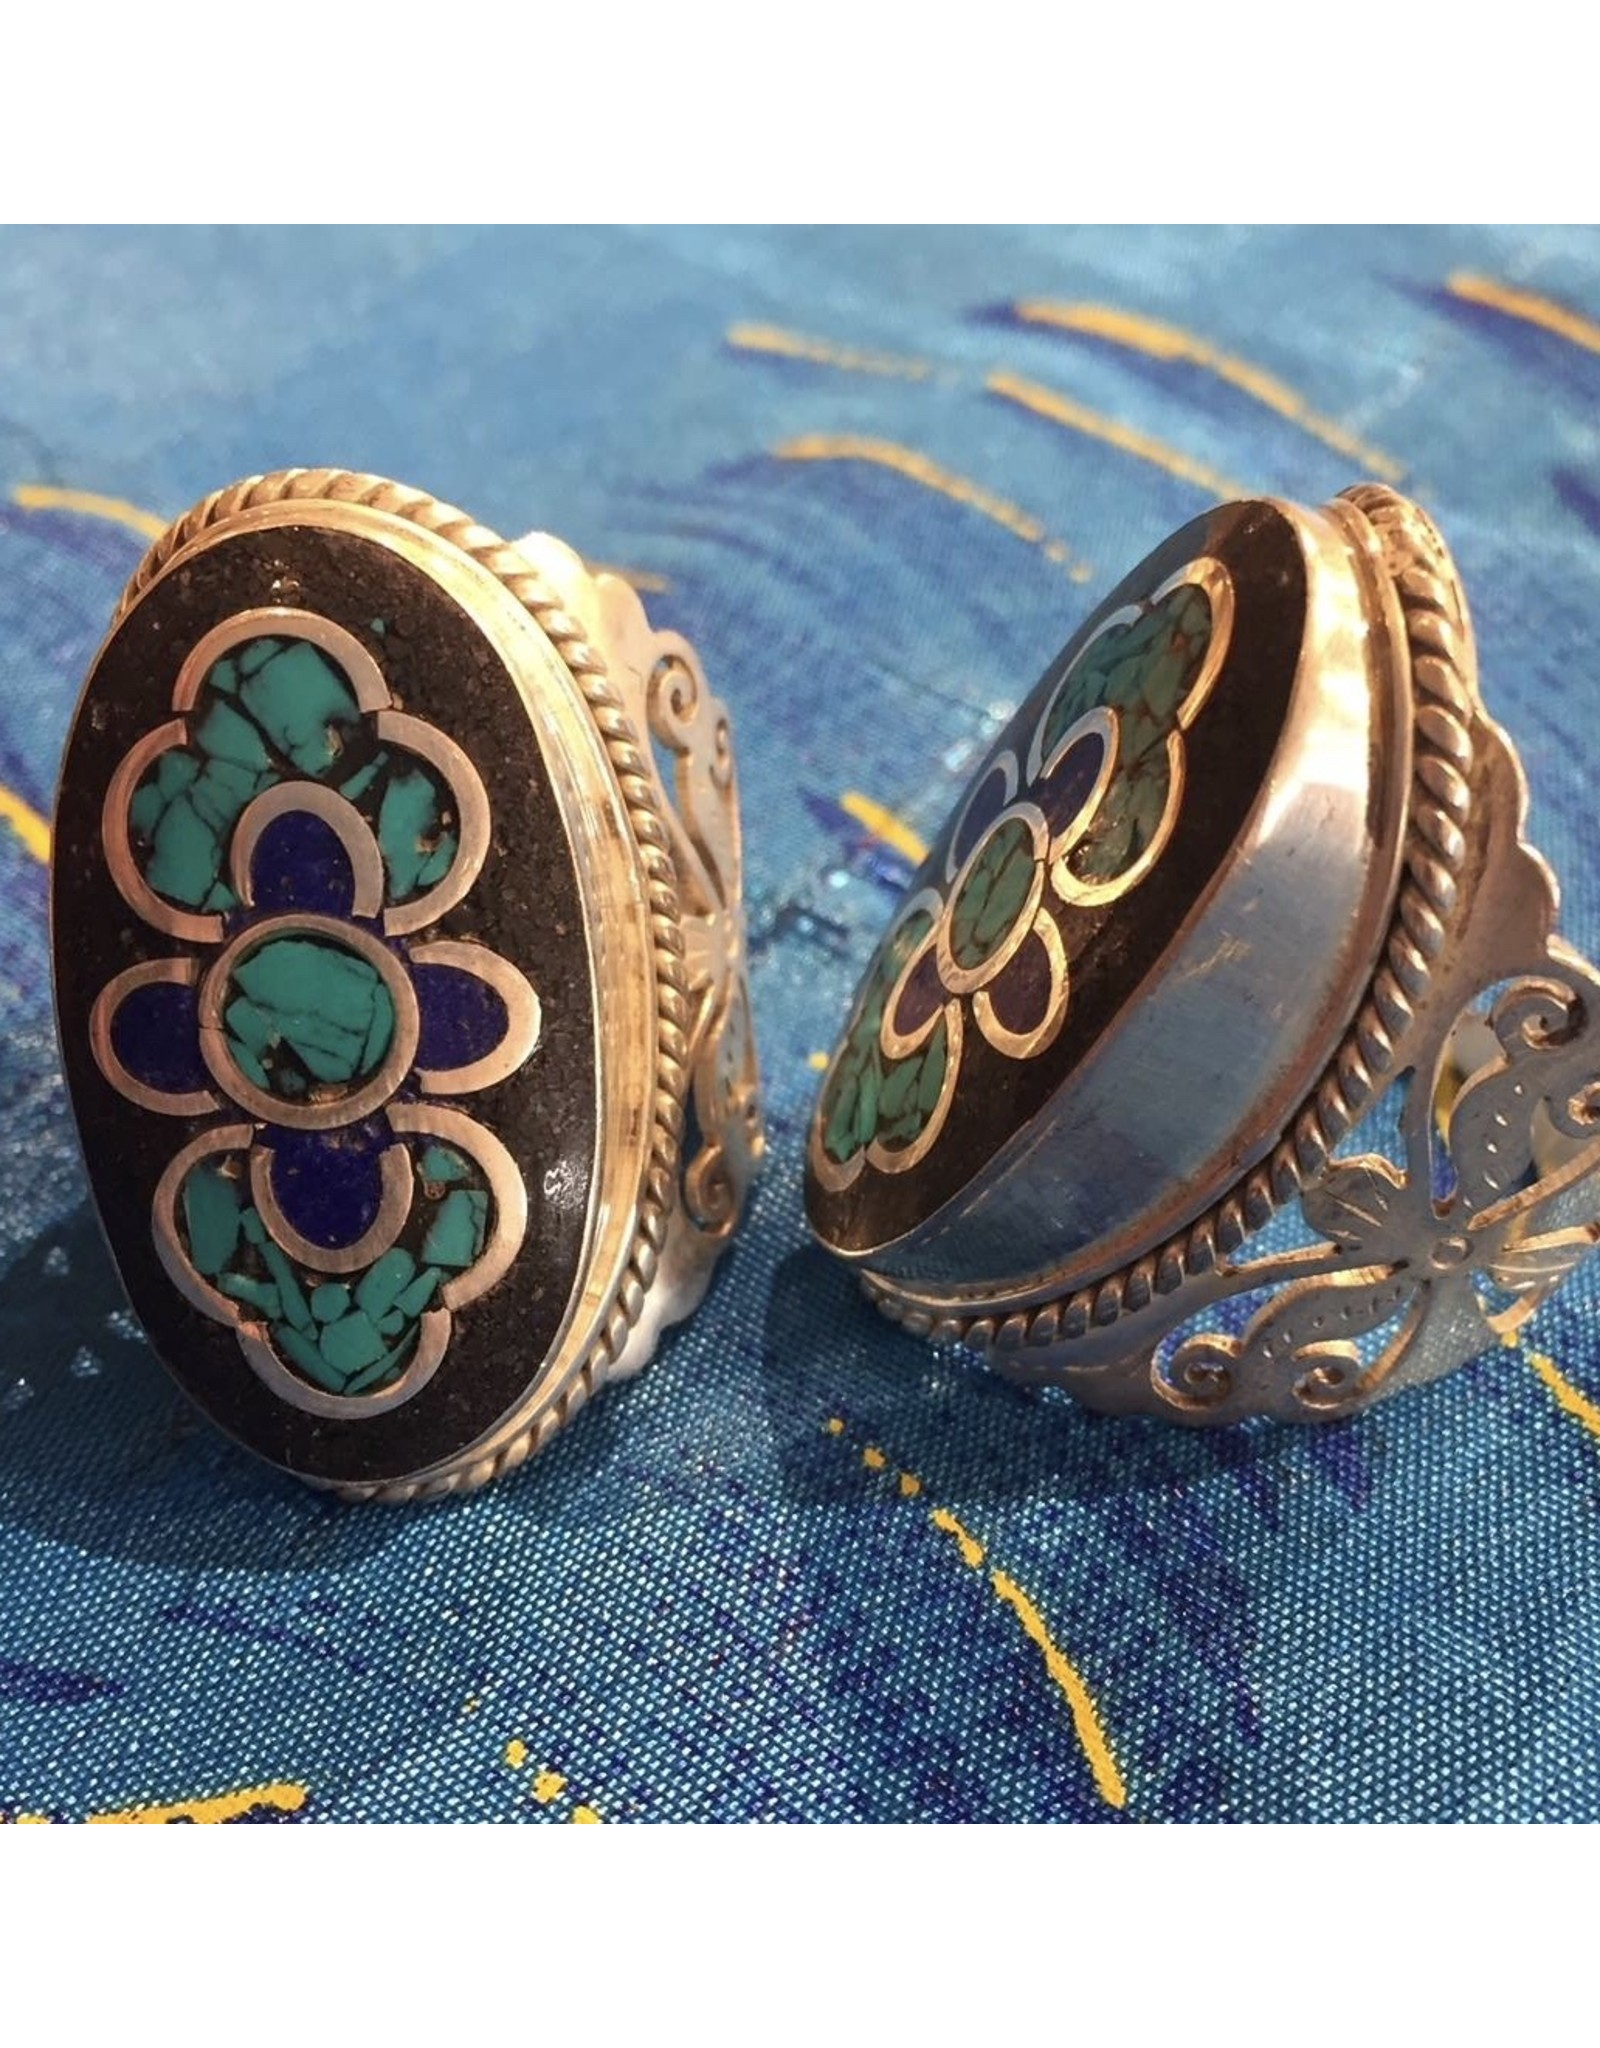 Ten Thousand Villages CLEARANCE Full Flower Ring